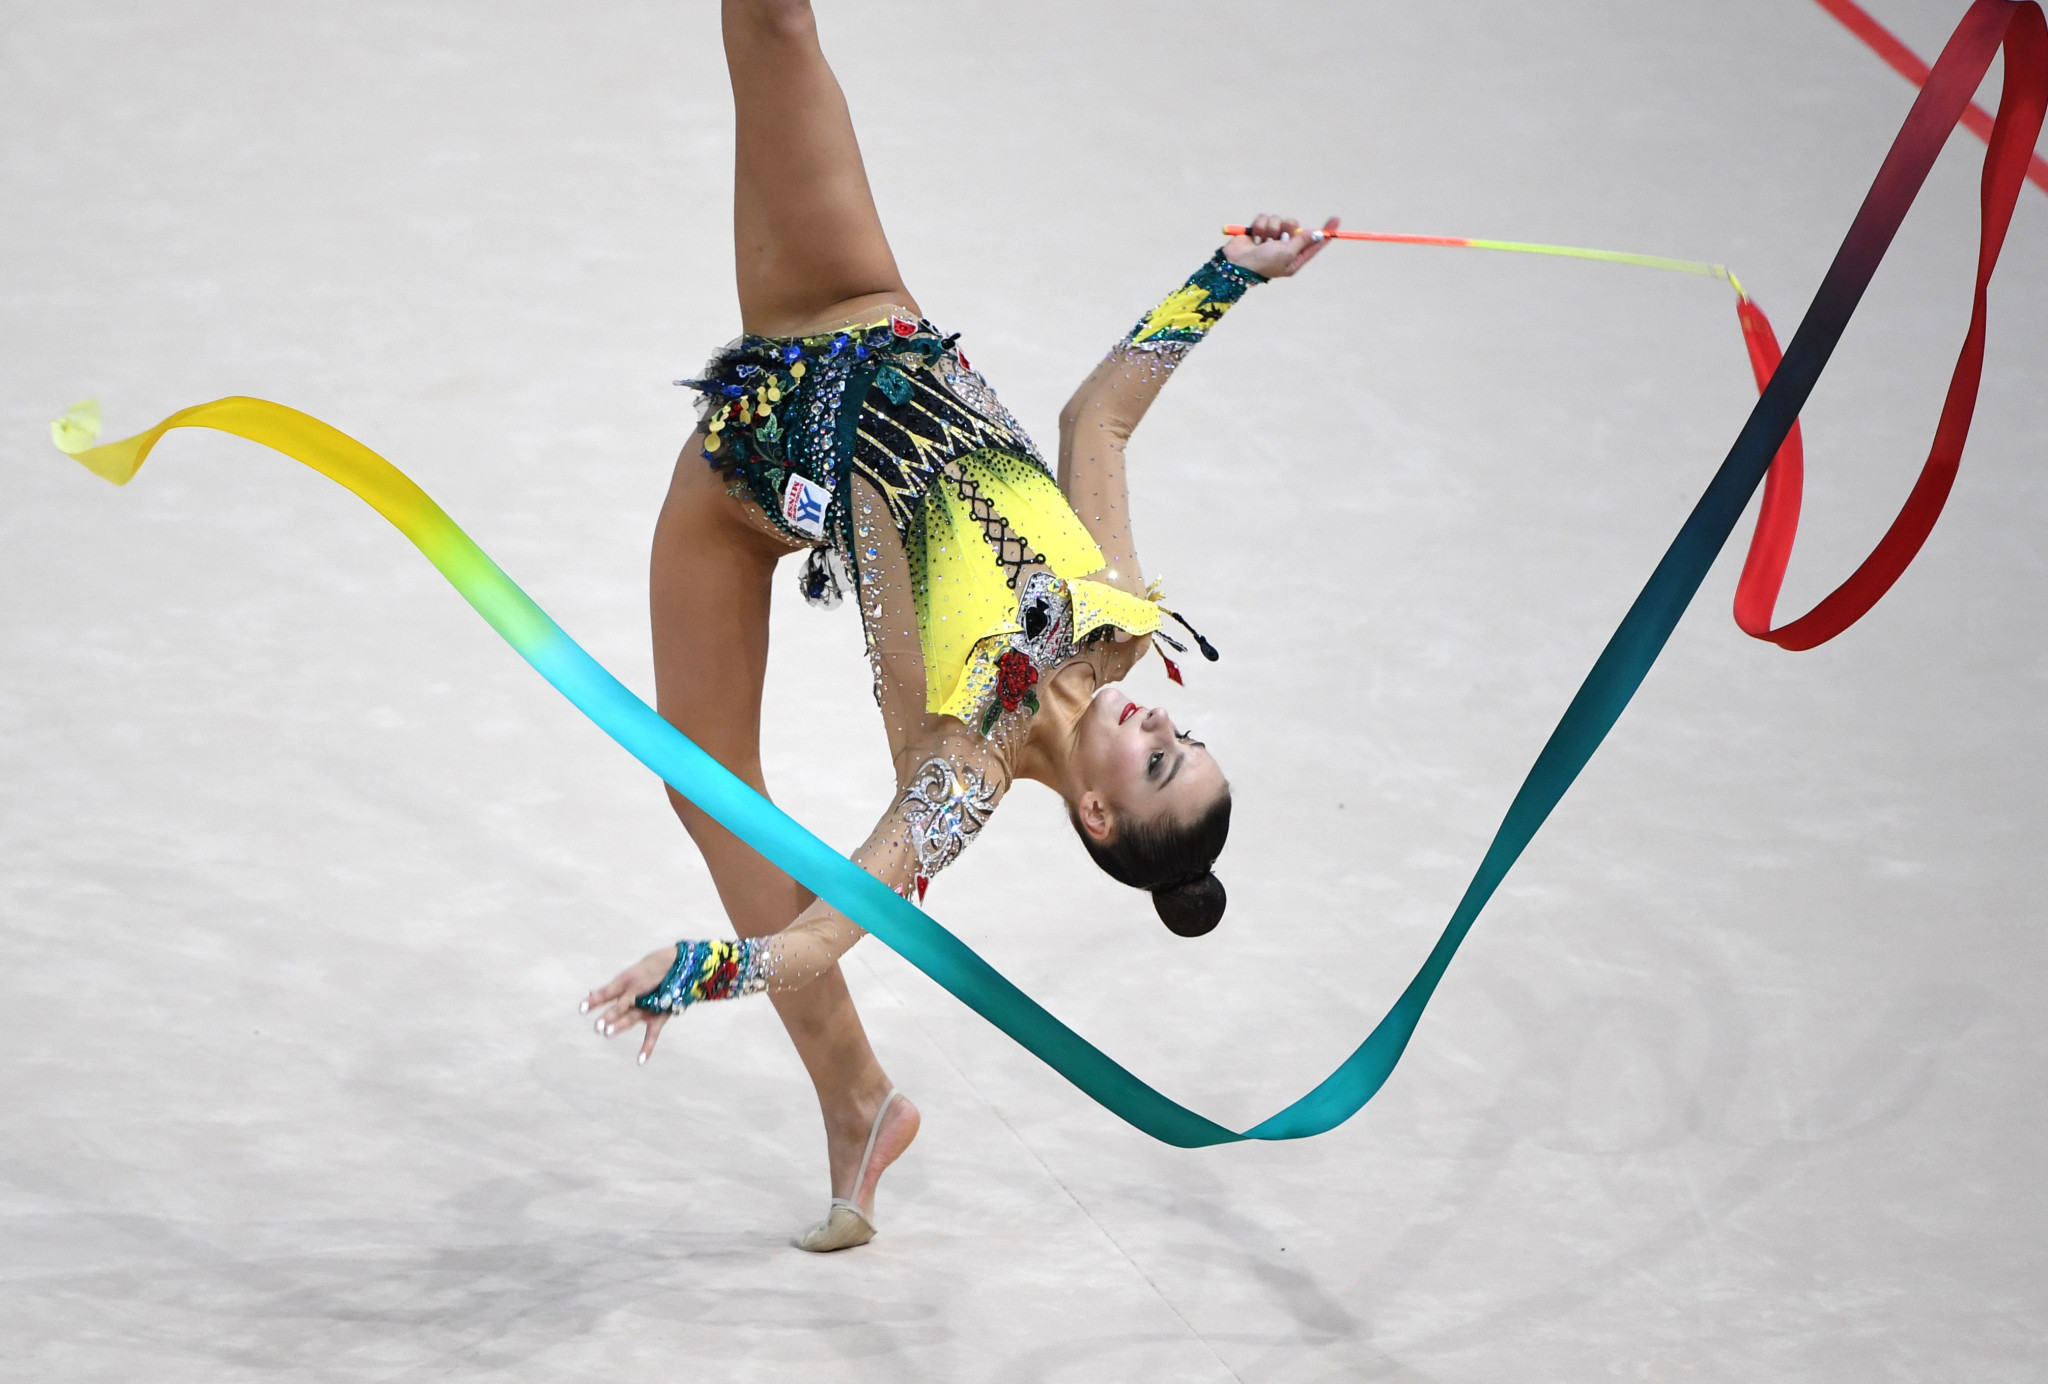 Alina Harnasko broke the Averina twin monopoly by winning the ribbon title ©Getty Images